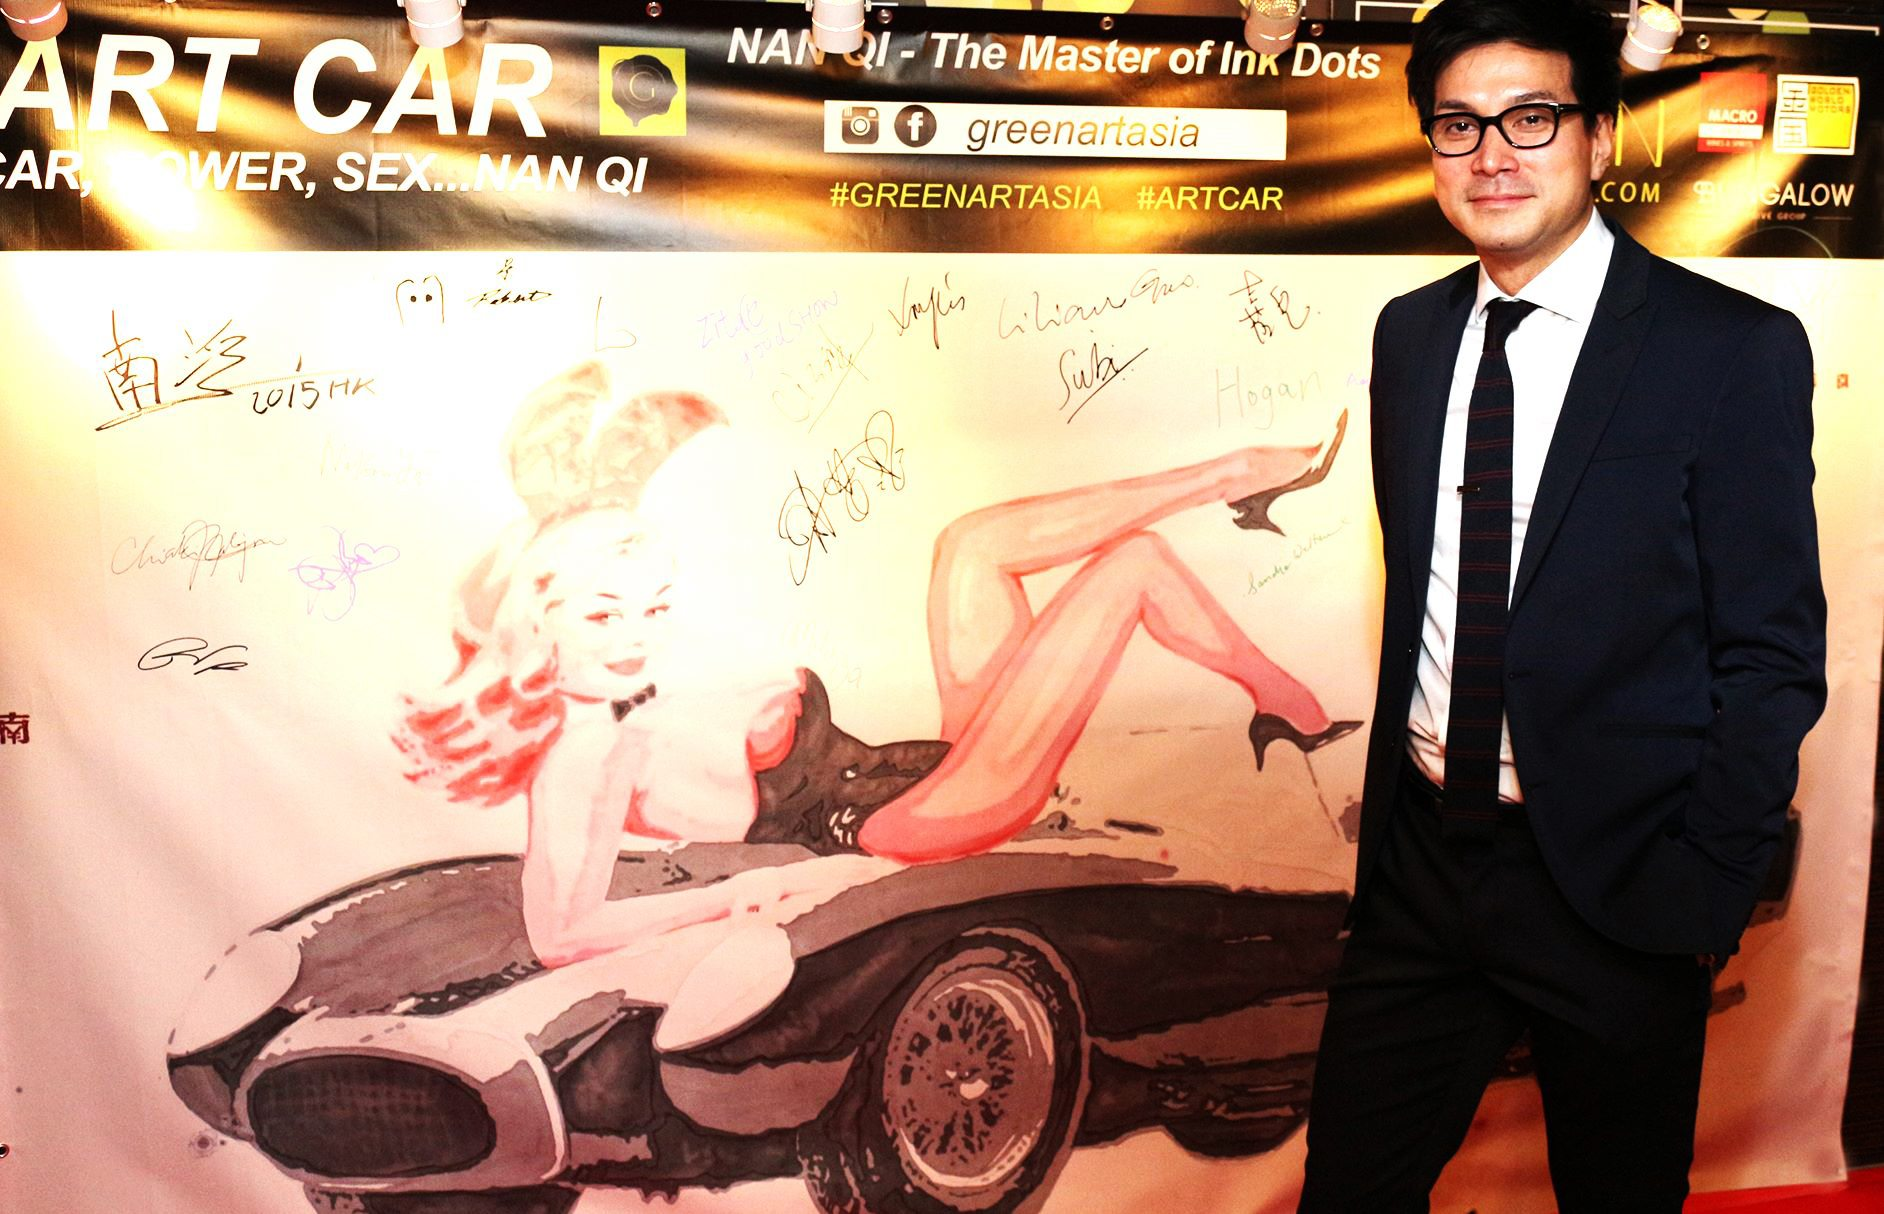 ART CAR with Bonhams Managing Director Alexi Fong